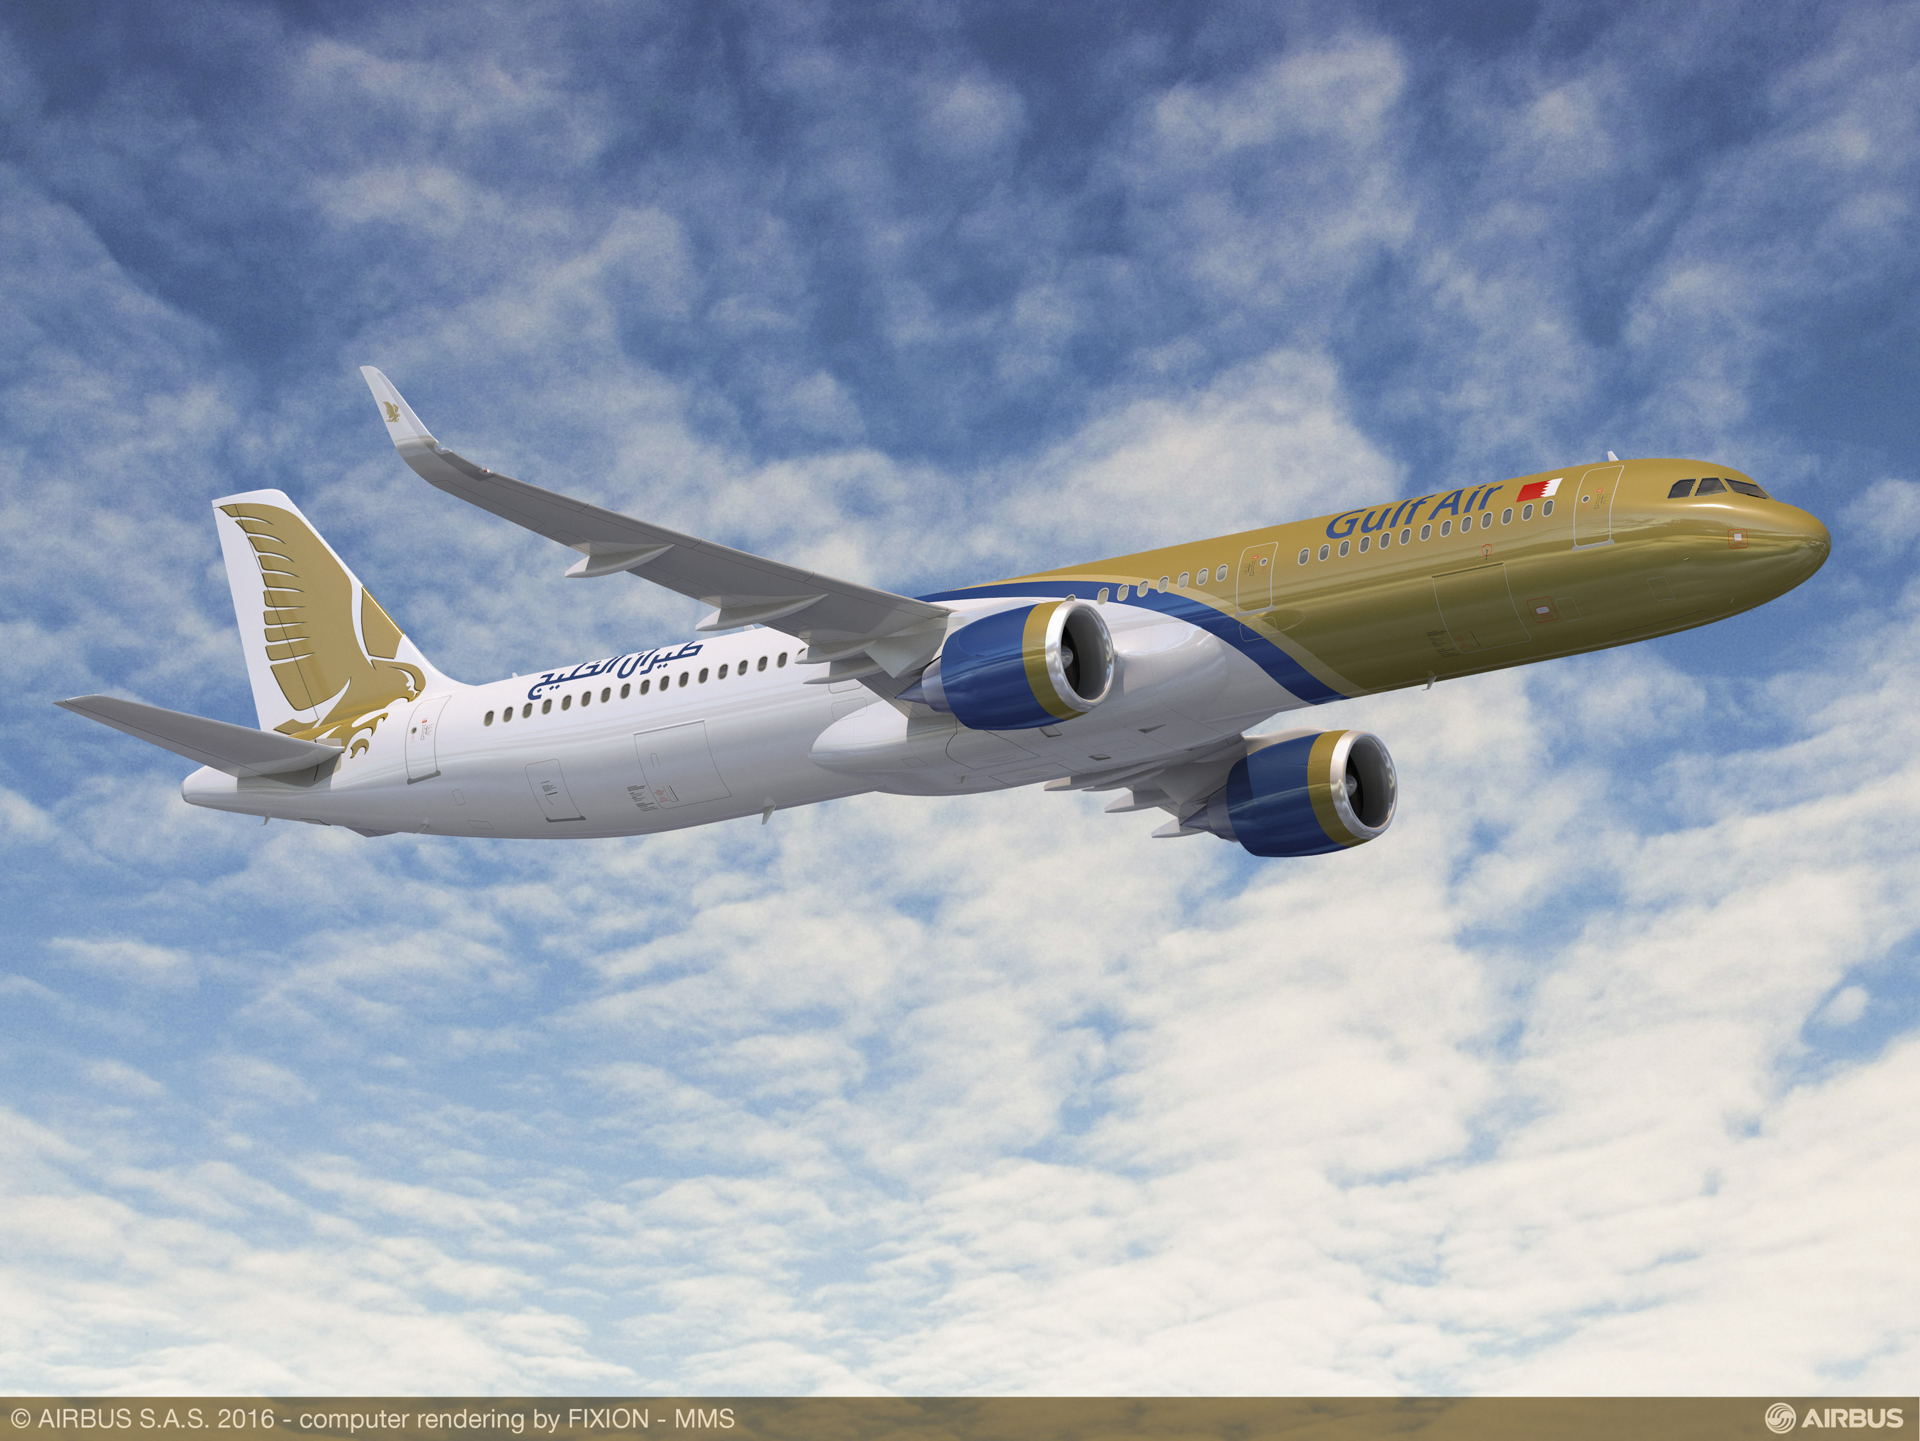 Gulf Air – which currently operates 28 Airbus aircraft – has announced a firm order for 29 A320neo Family aircraft, including 17 A321neo and 12 A320neo jetliners. Ten of the A320neo aircraft have been confirmed in 2012